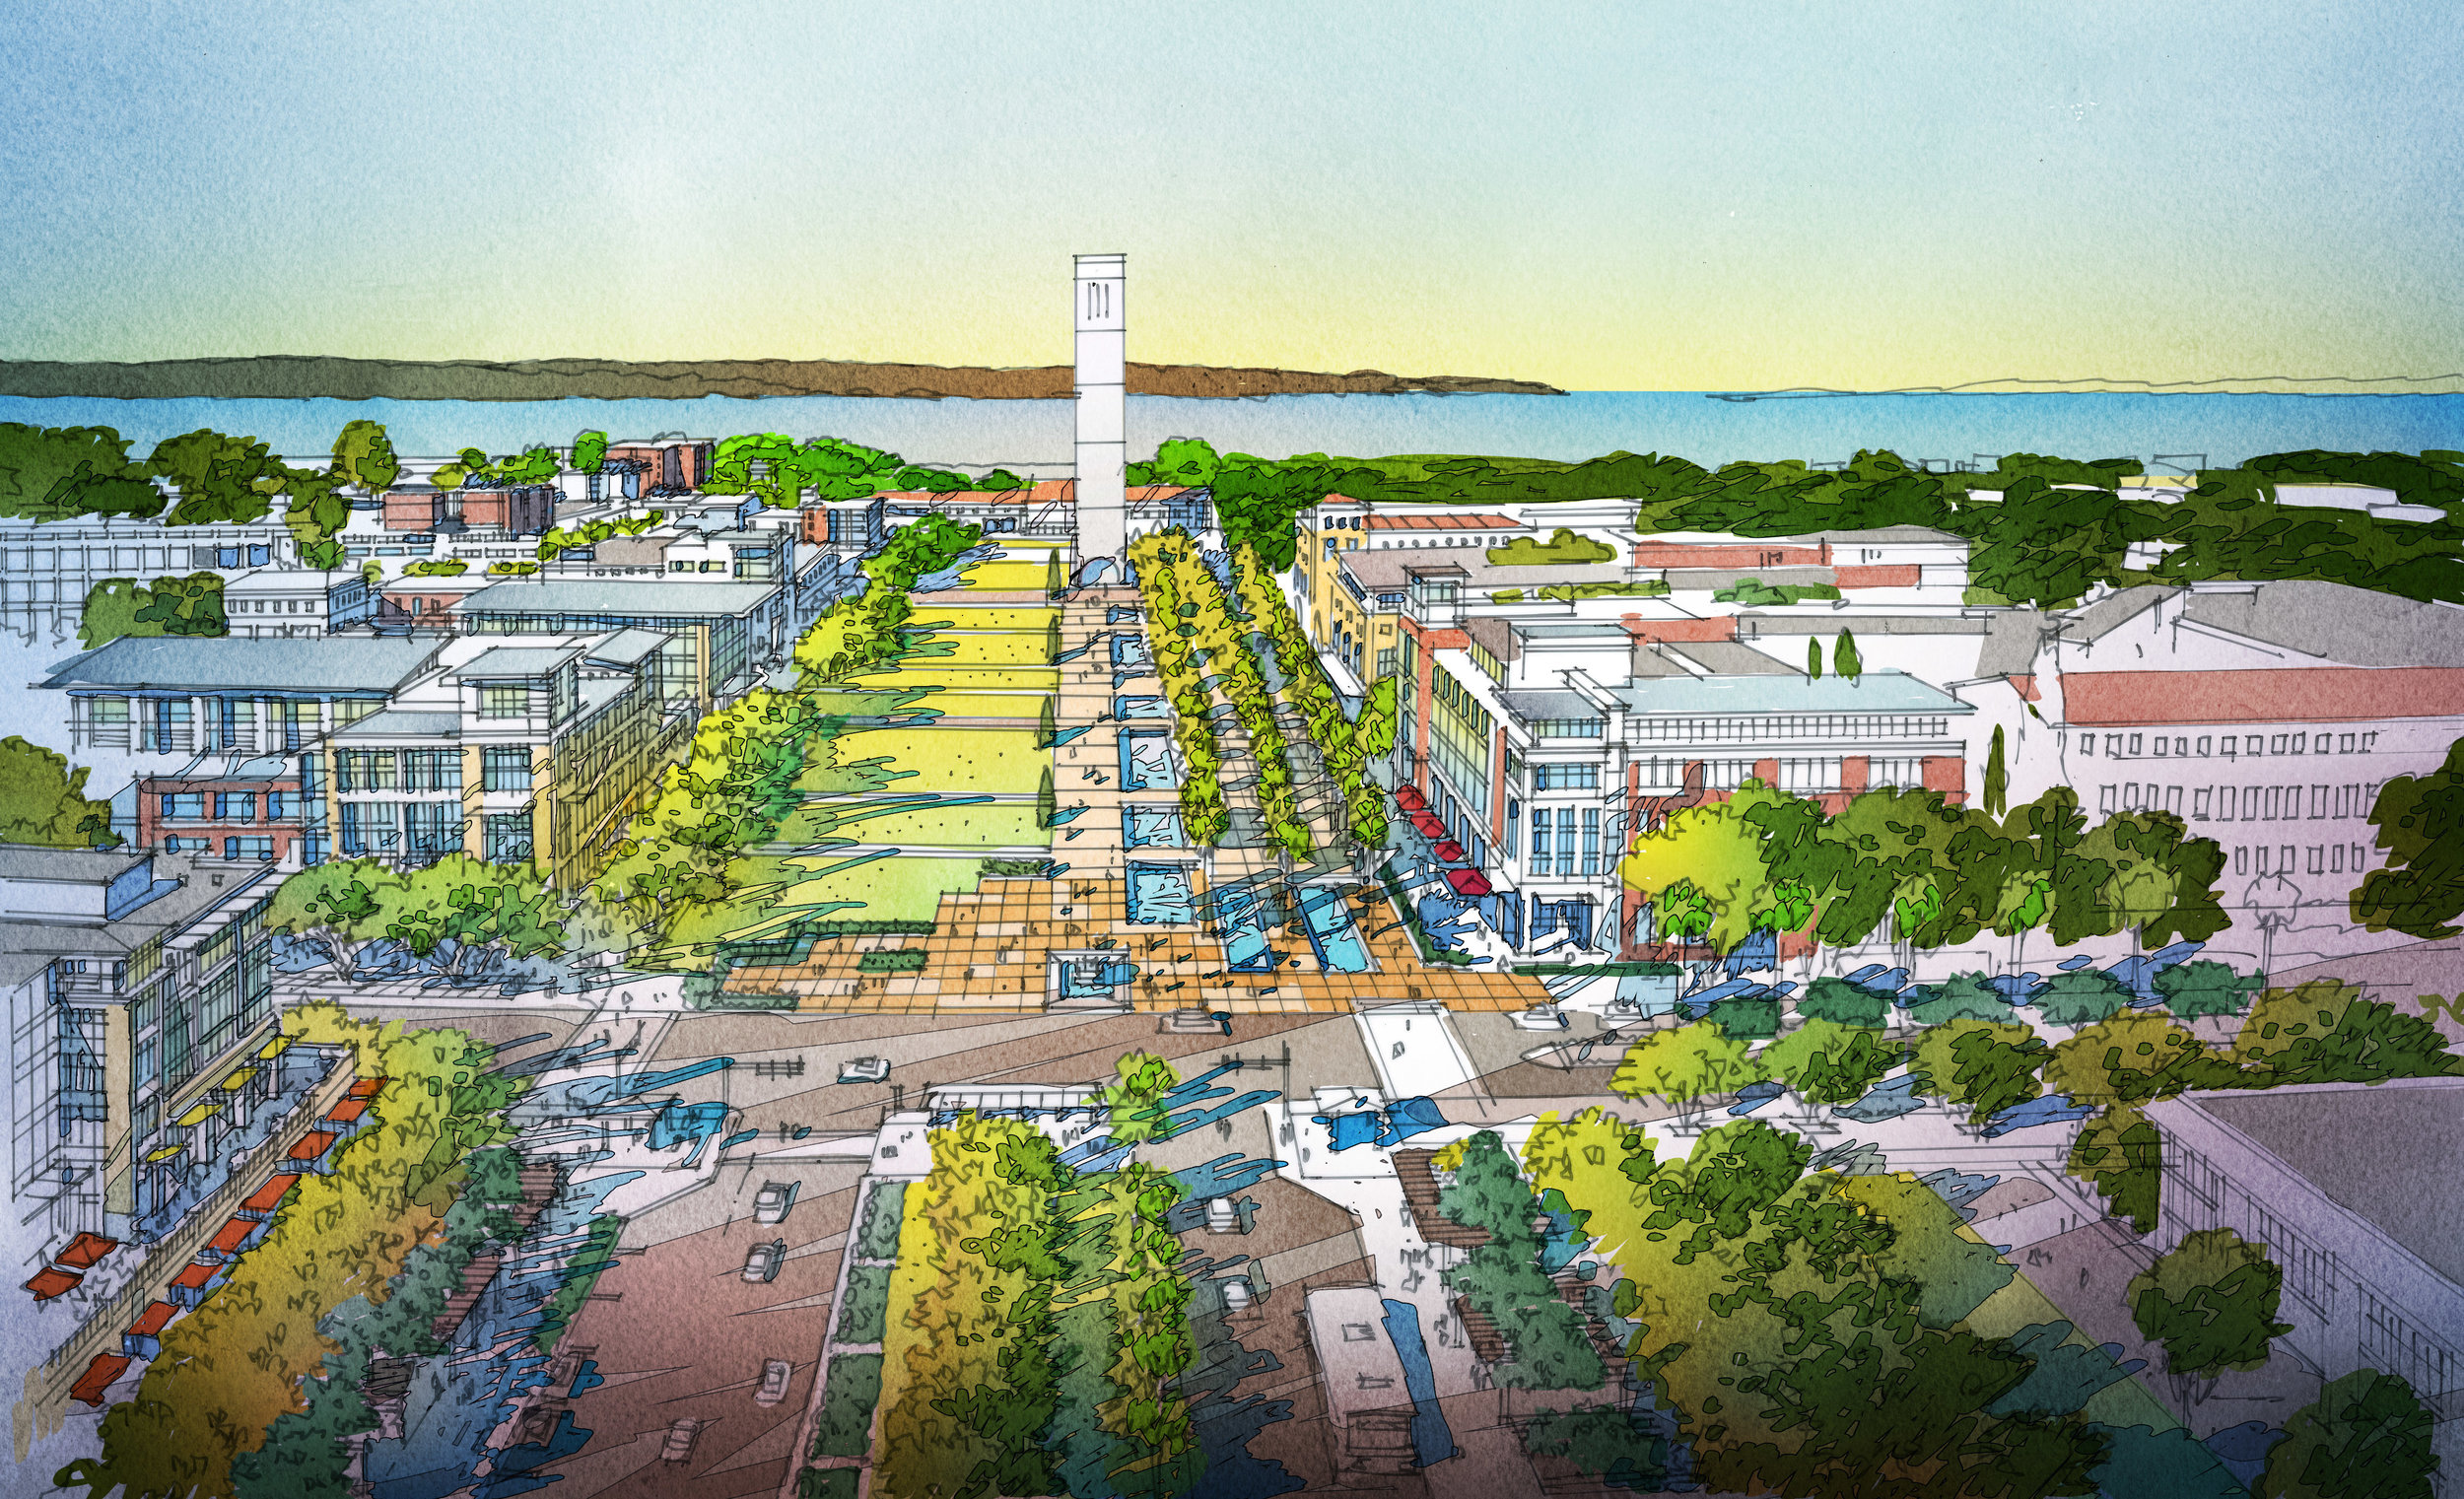 ucsb master plan - Santa Barbara, california